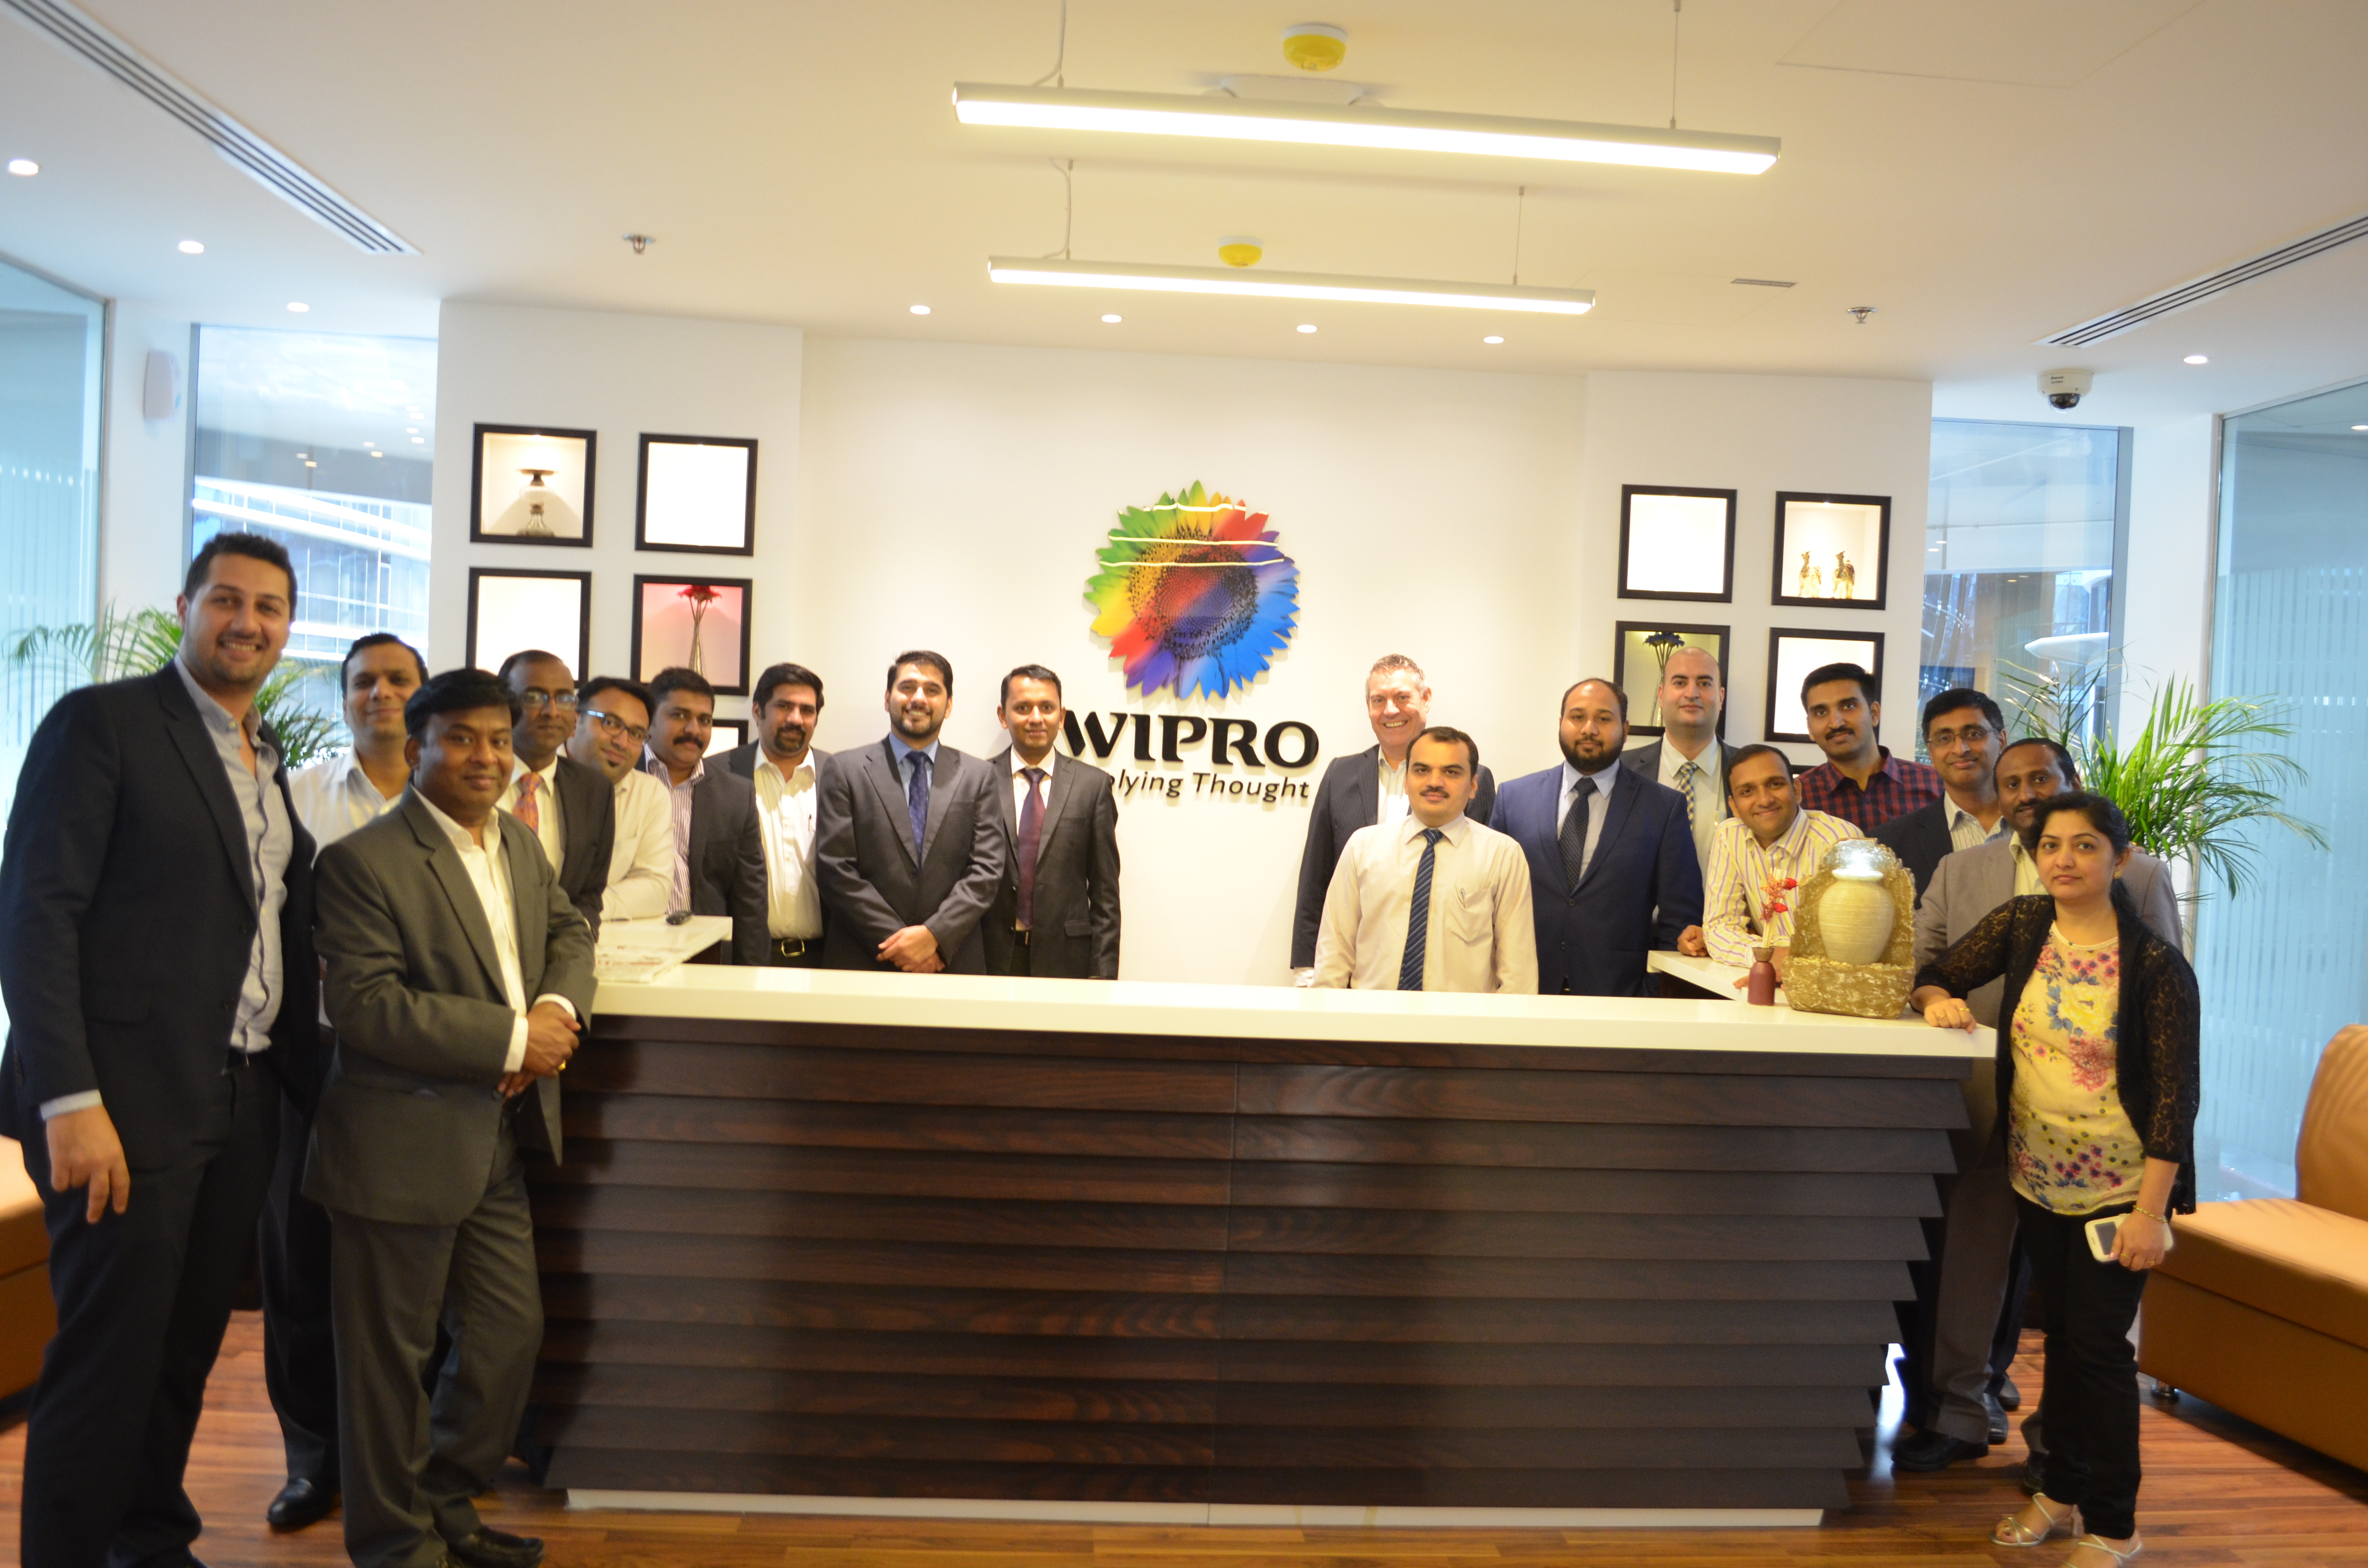 wipro to expand presence in qatar business wire